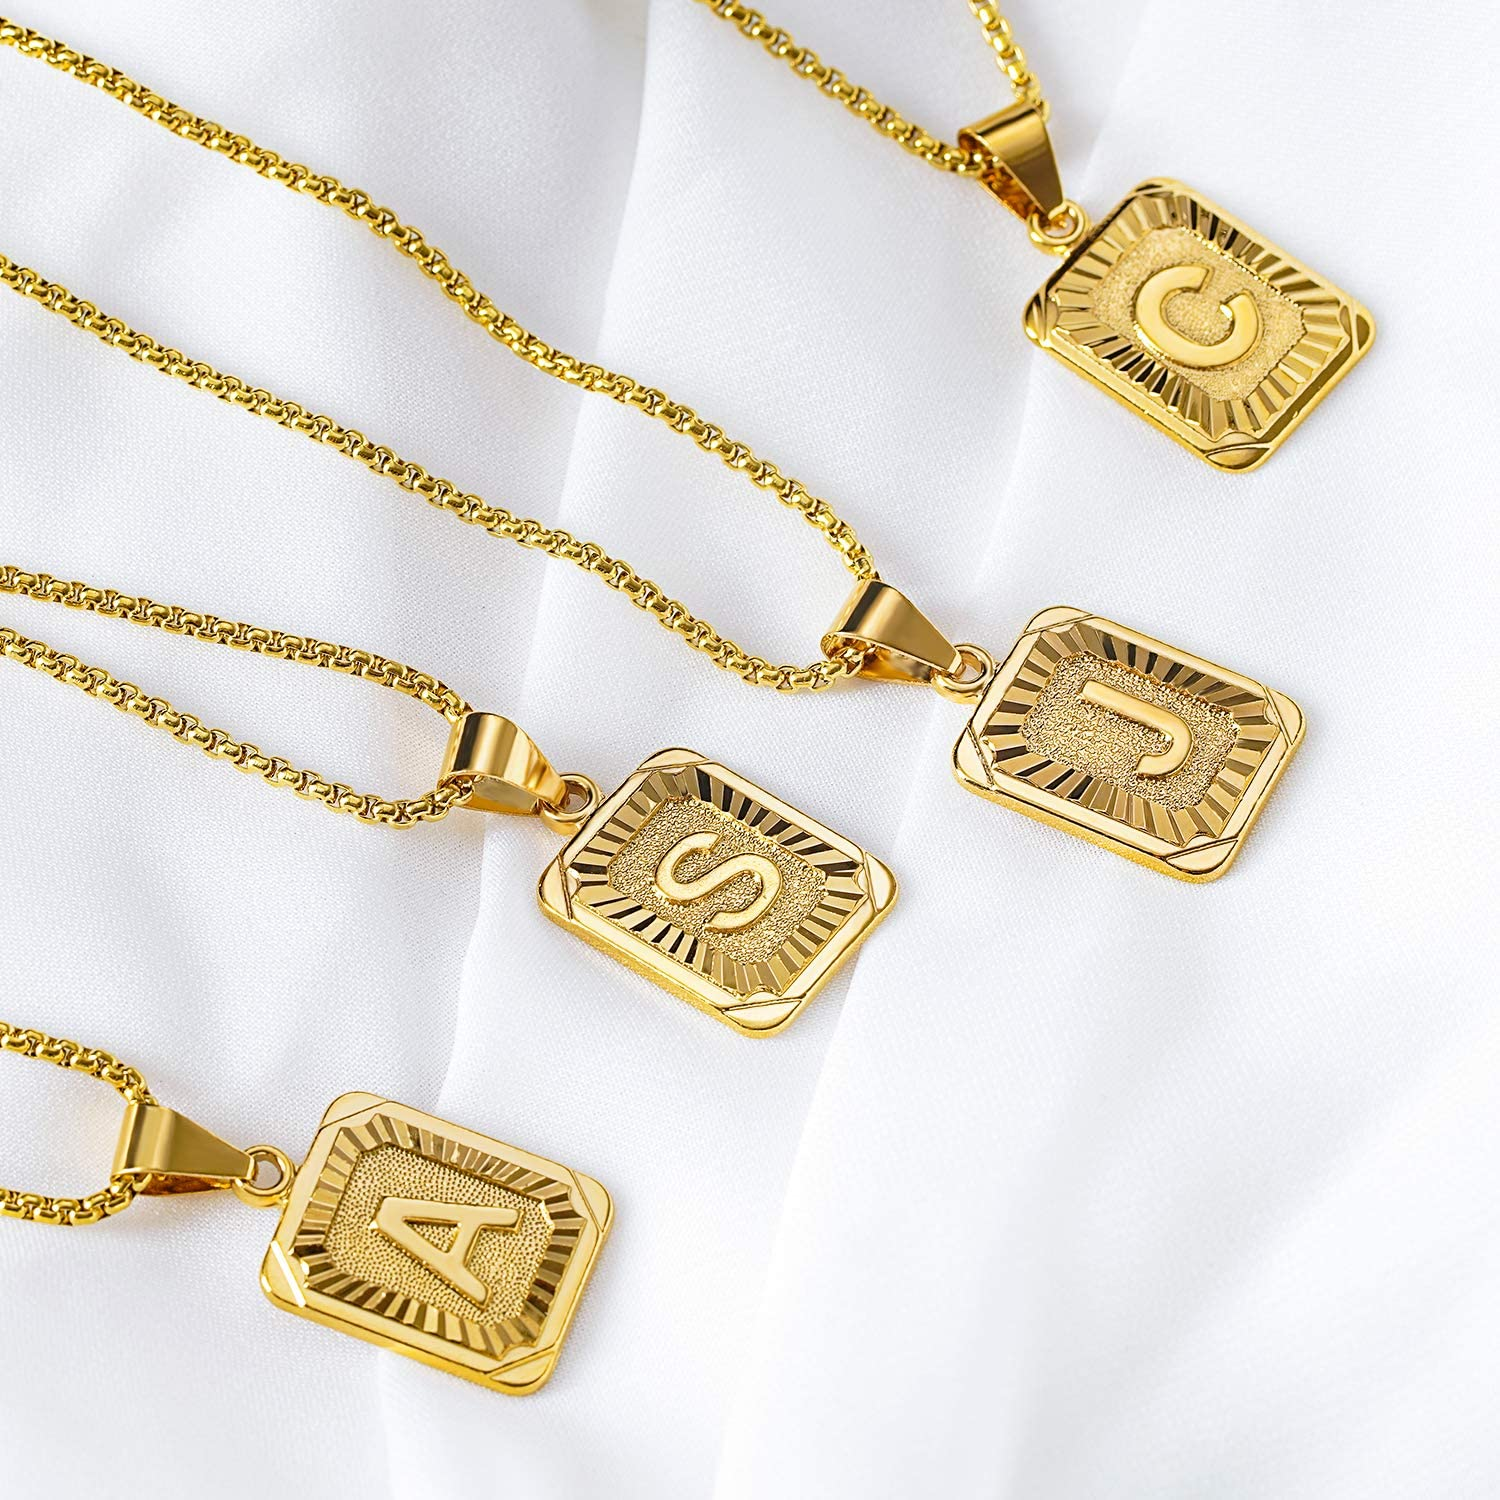 KissYan Initial Letter Pendant Necklace for Mens Womens 18K Gold Plated Square Capital Monogram Necklace Alhpabets from A-Z Box Figaro Chain Necklace